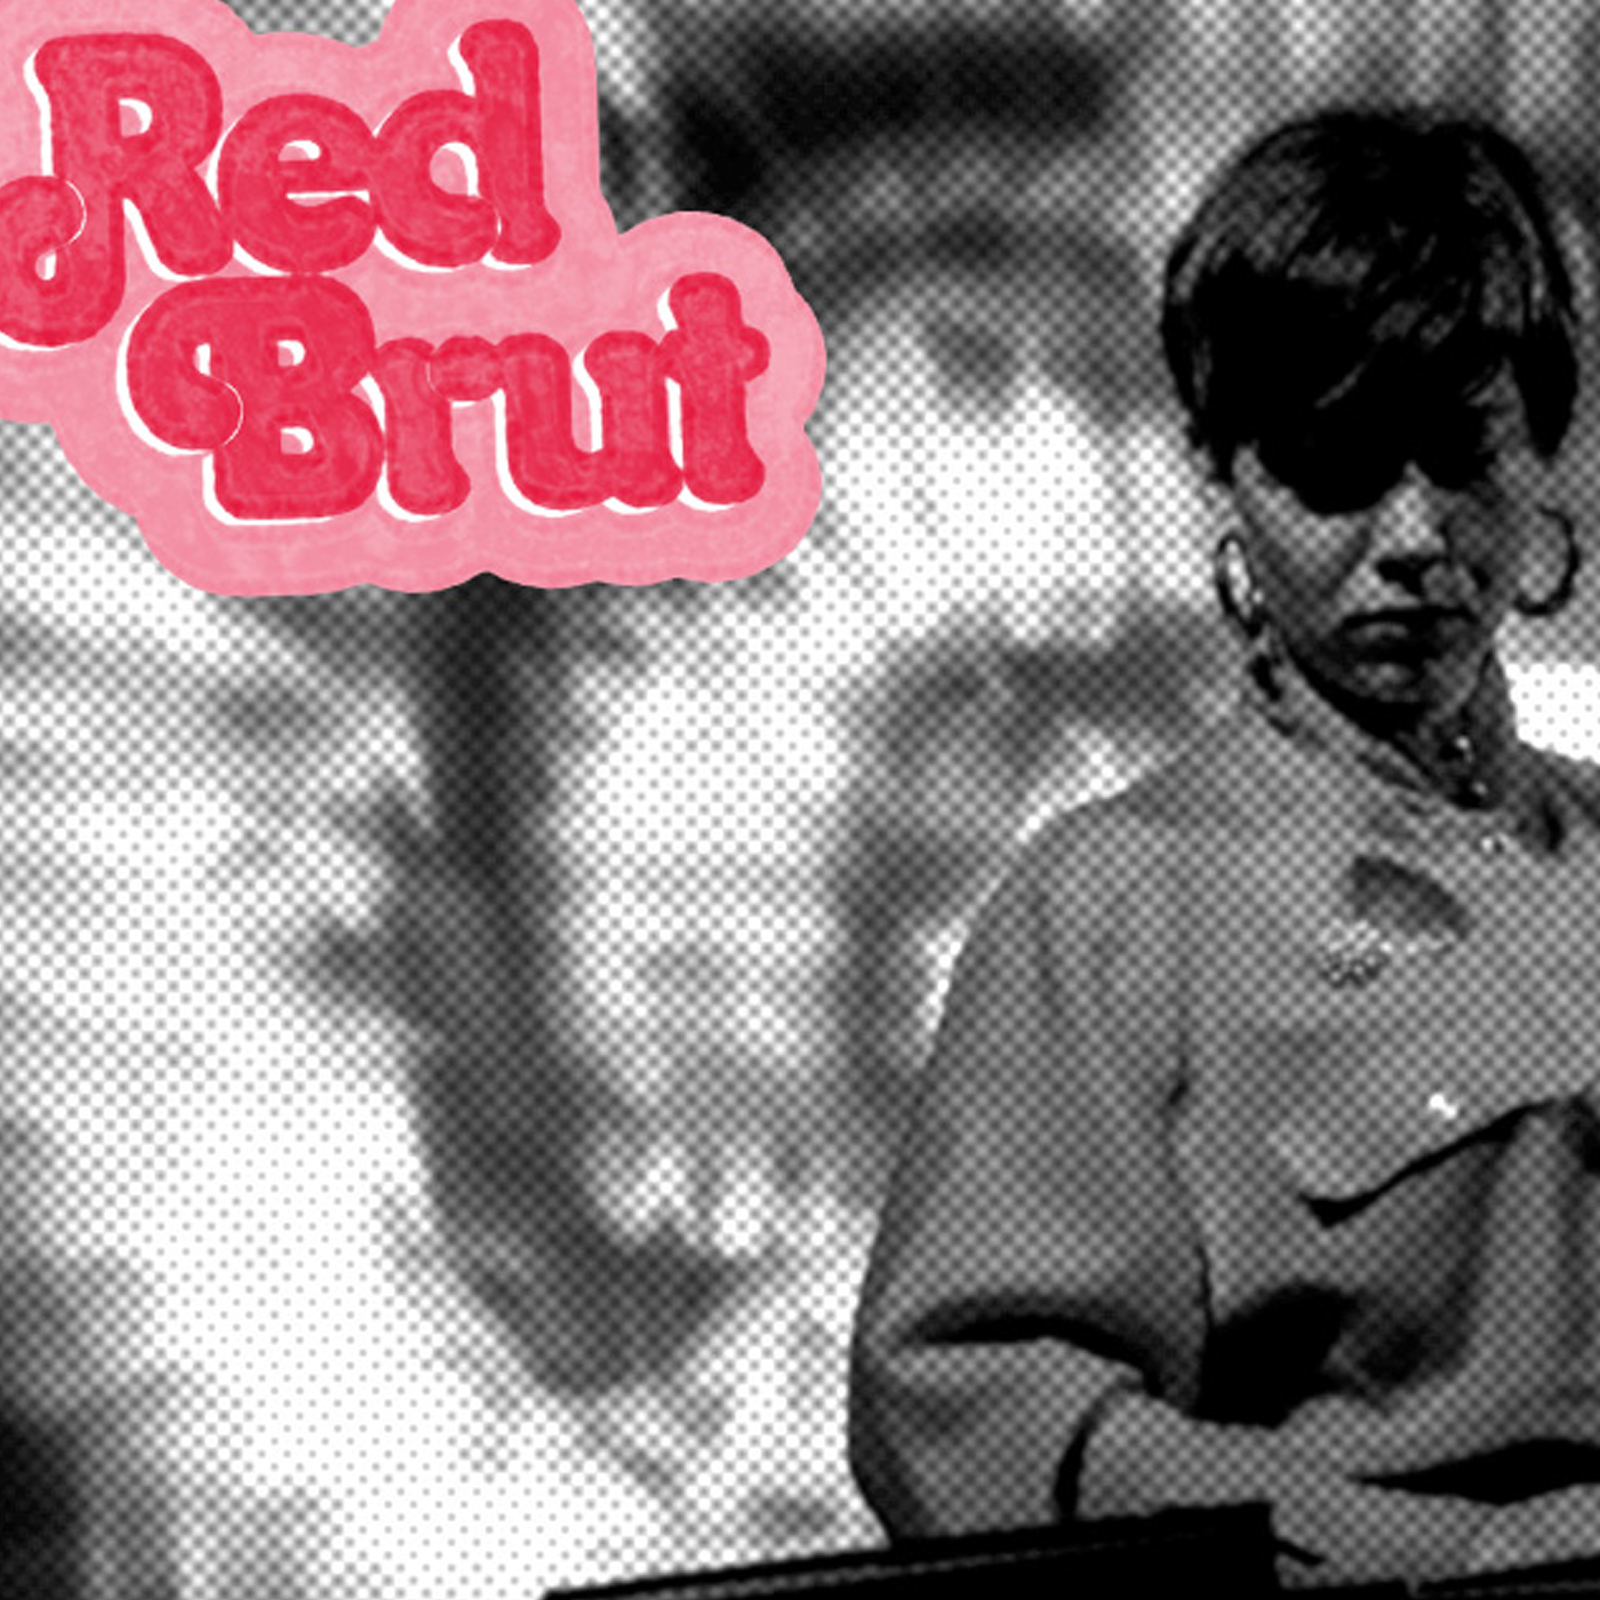 PSAS 2018 | Red Brut | Lineup